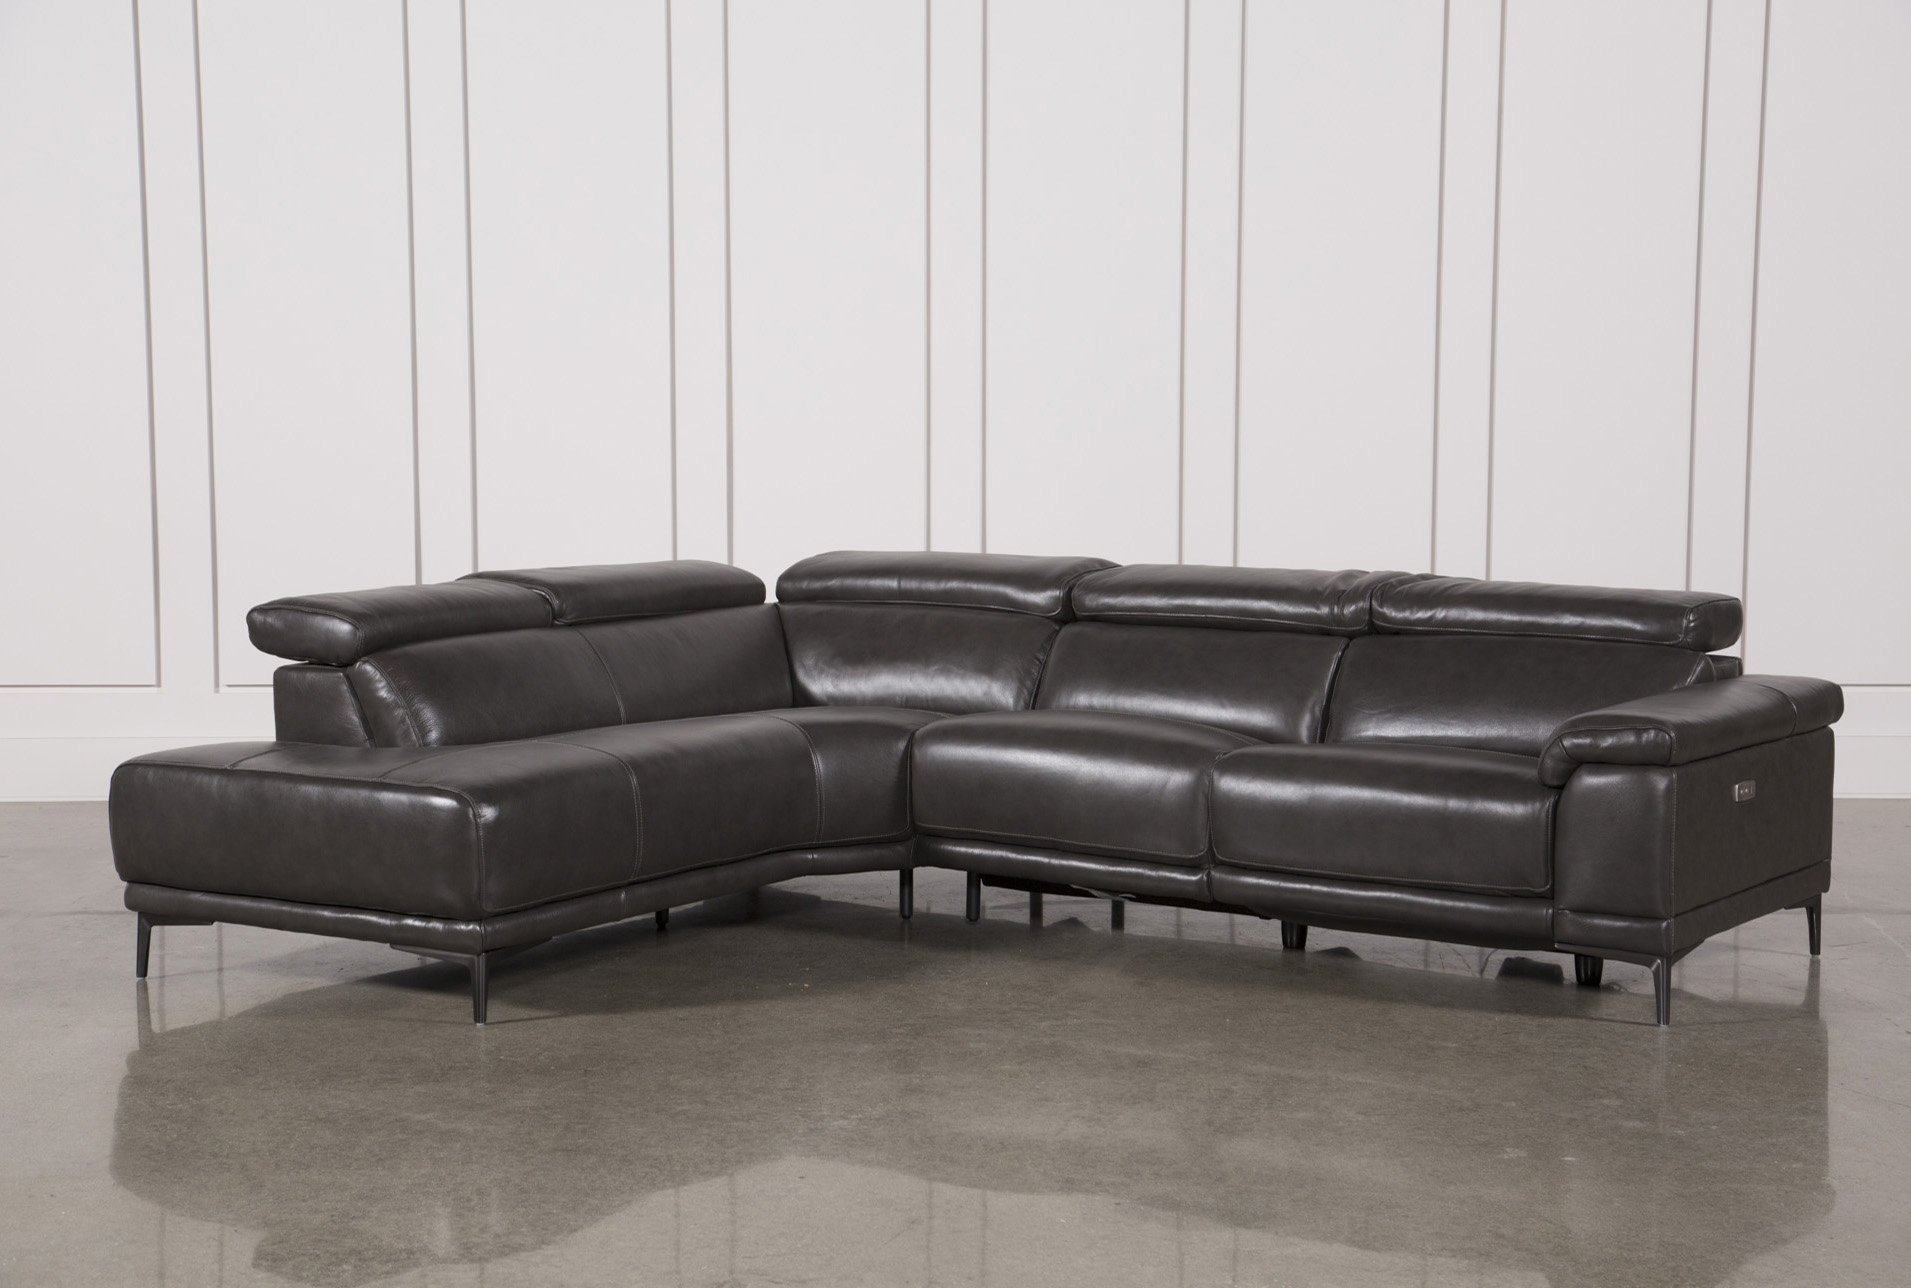 Tatum Dark Grey 2 Piece Sectional W/Laf Chaise (Qty: 1) Has Been  Successfully Added To Your Cart.